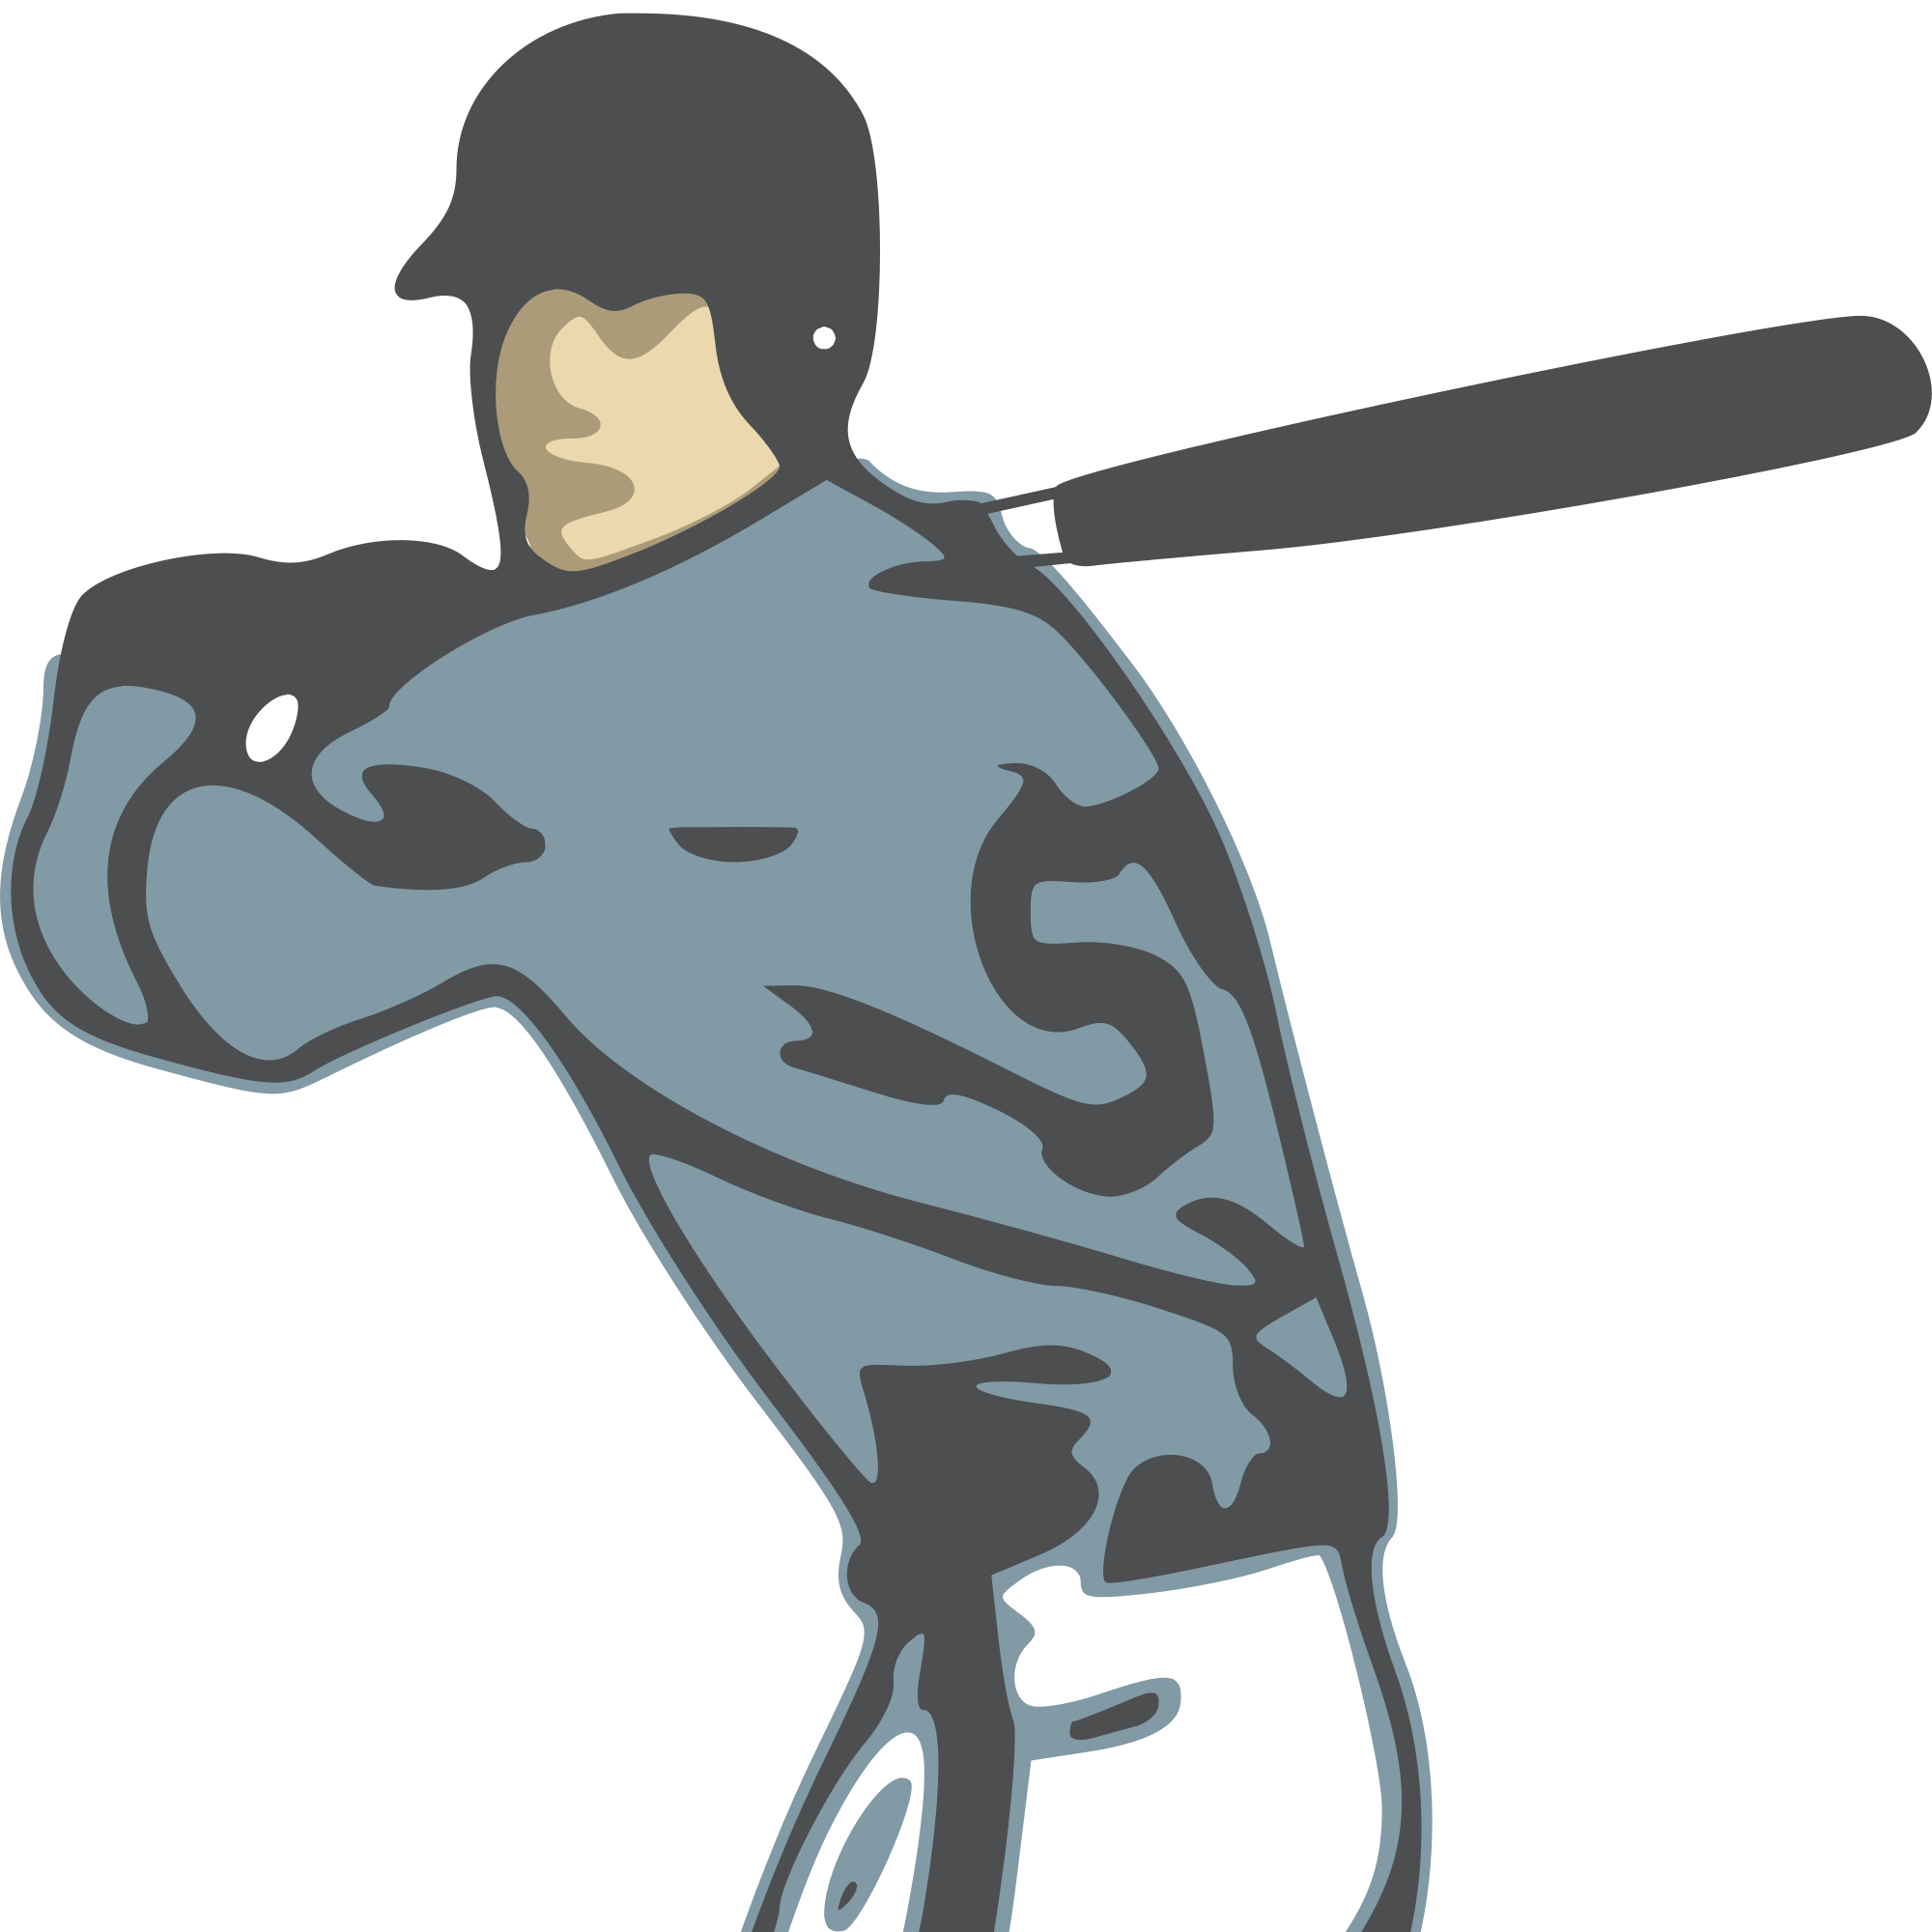 Batter baseball clipart svg black and white library Baseball Batter Clipart at GetDrawings.com | Free for personal use ... svg black and white library